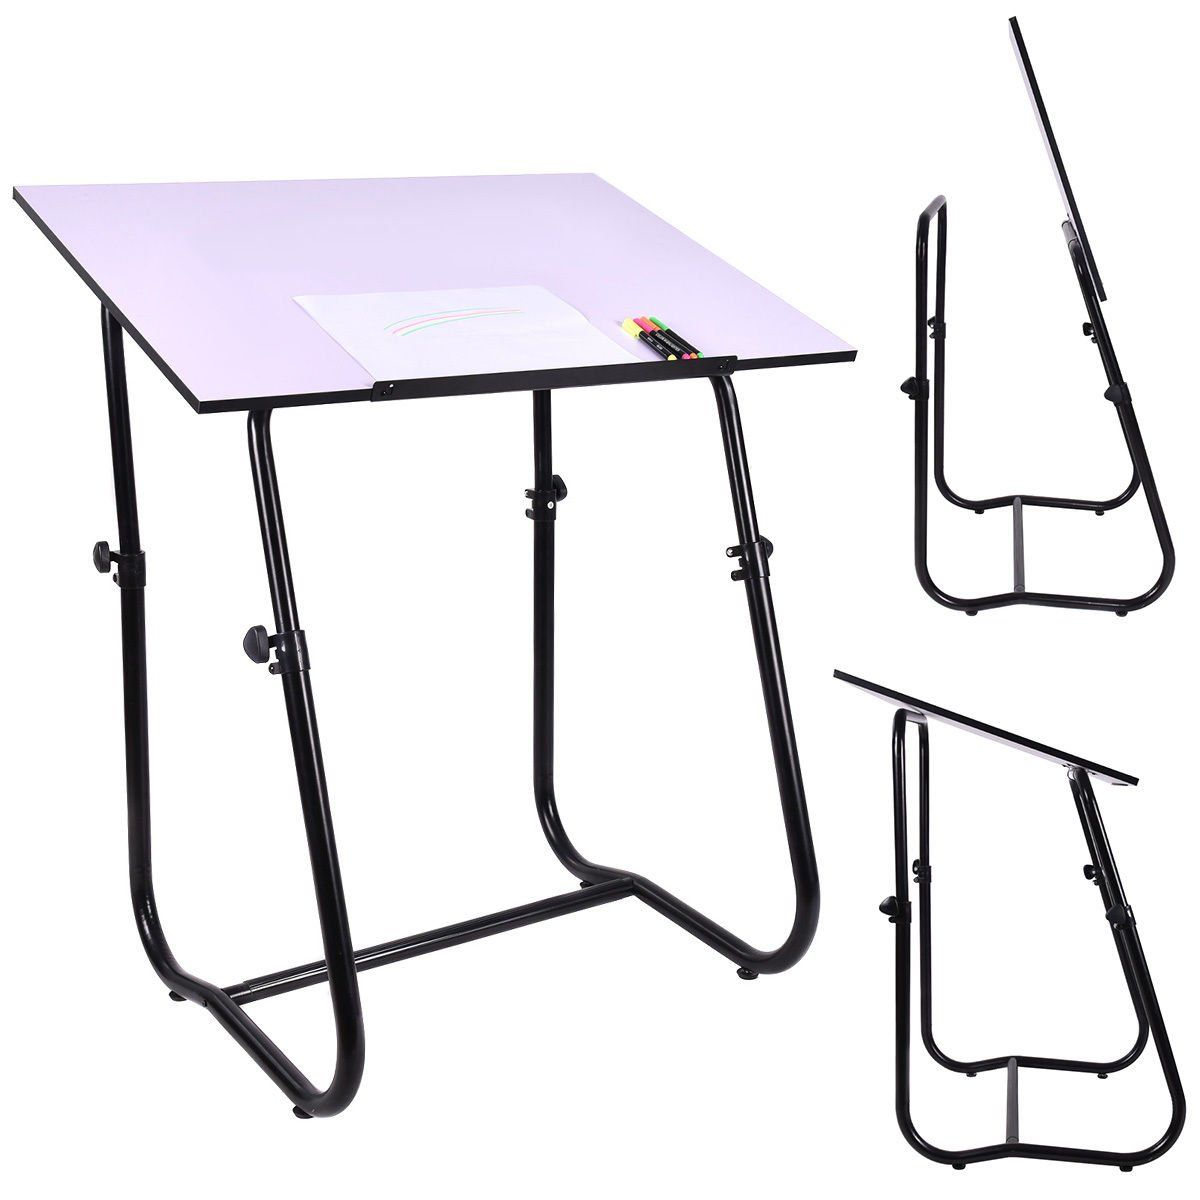 New MTN-G Drawing Desk Drafting Table Adjustable Art Craft Workstation Hobby White